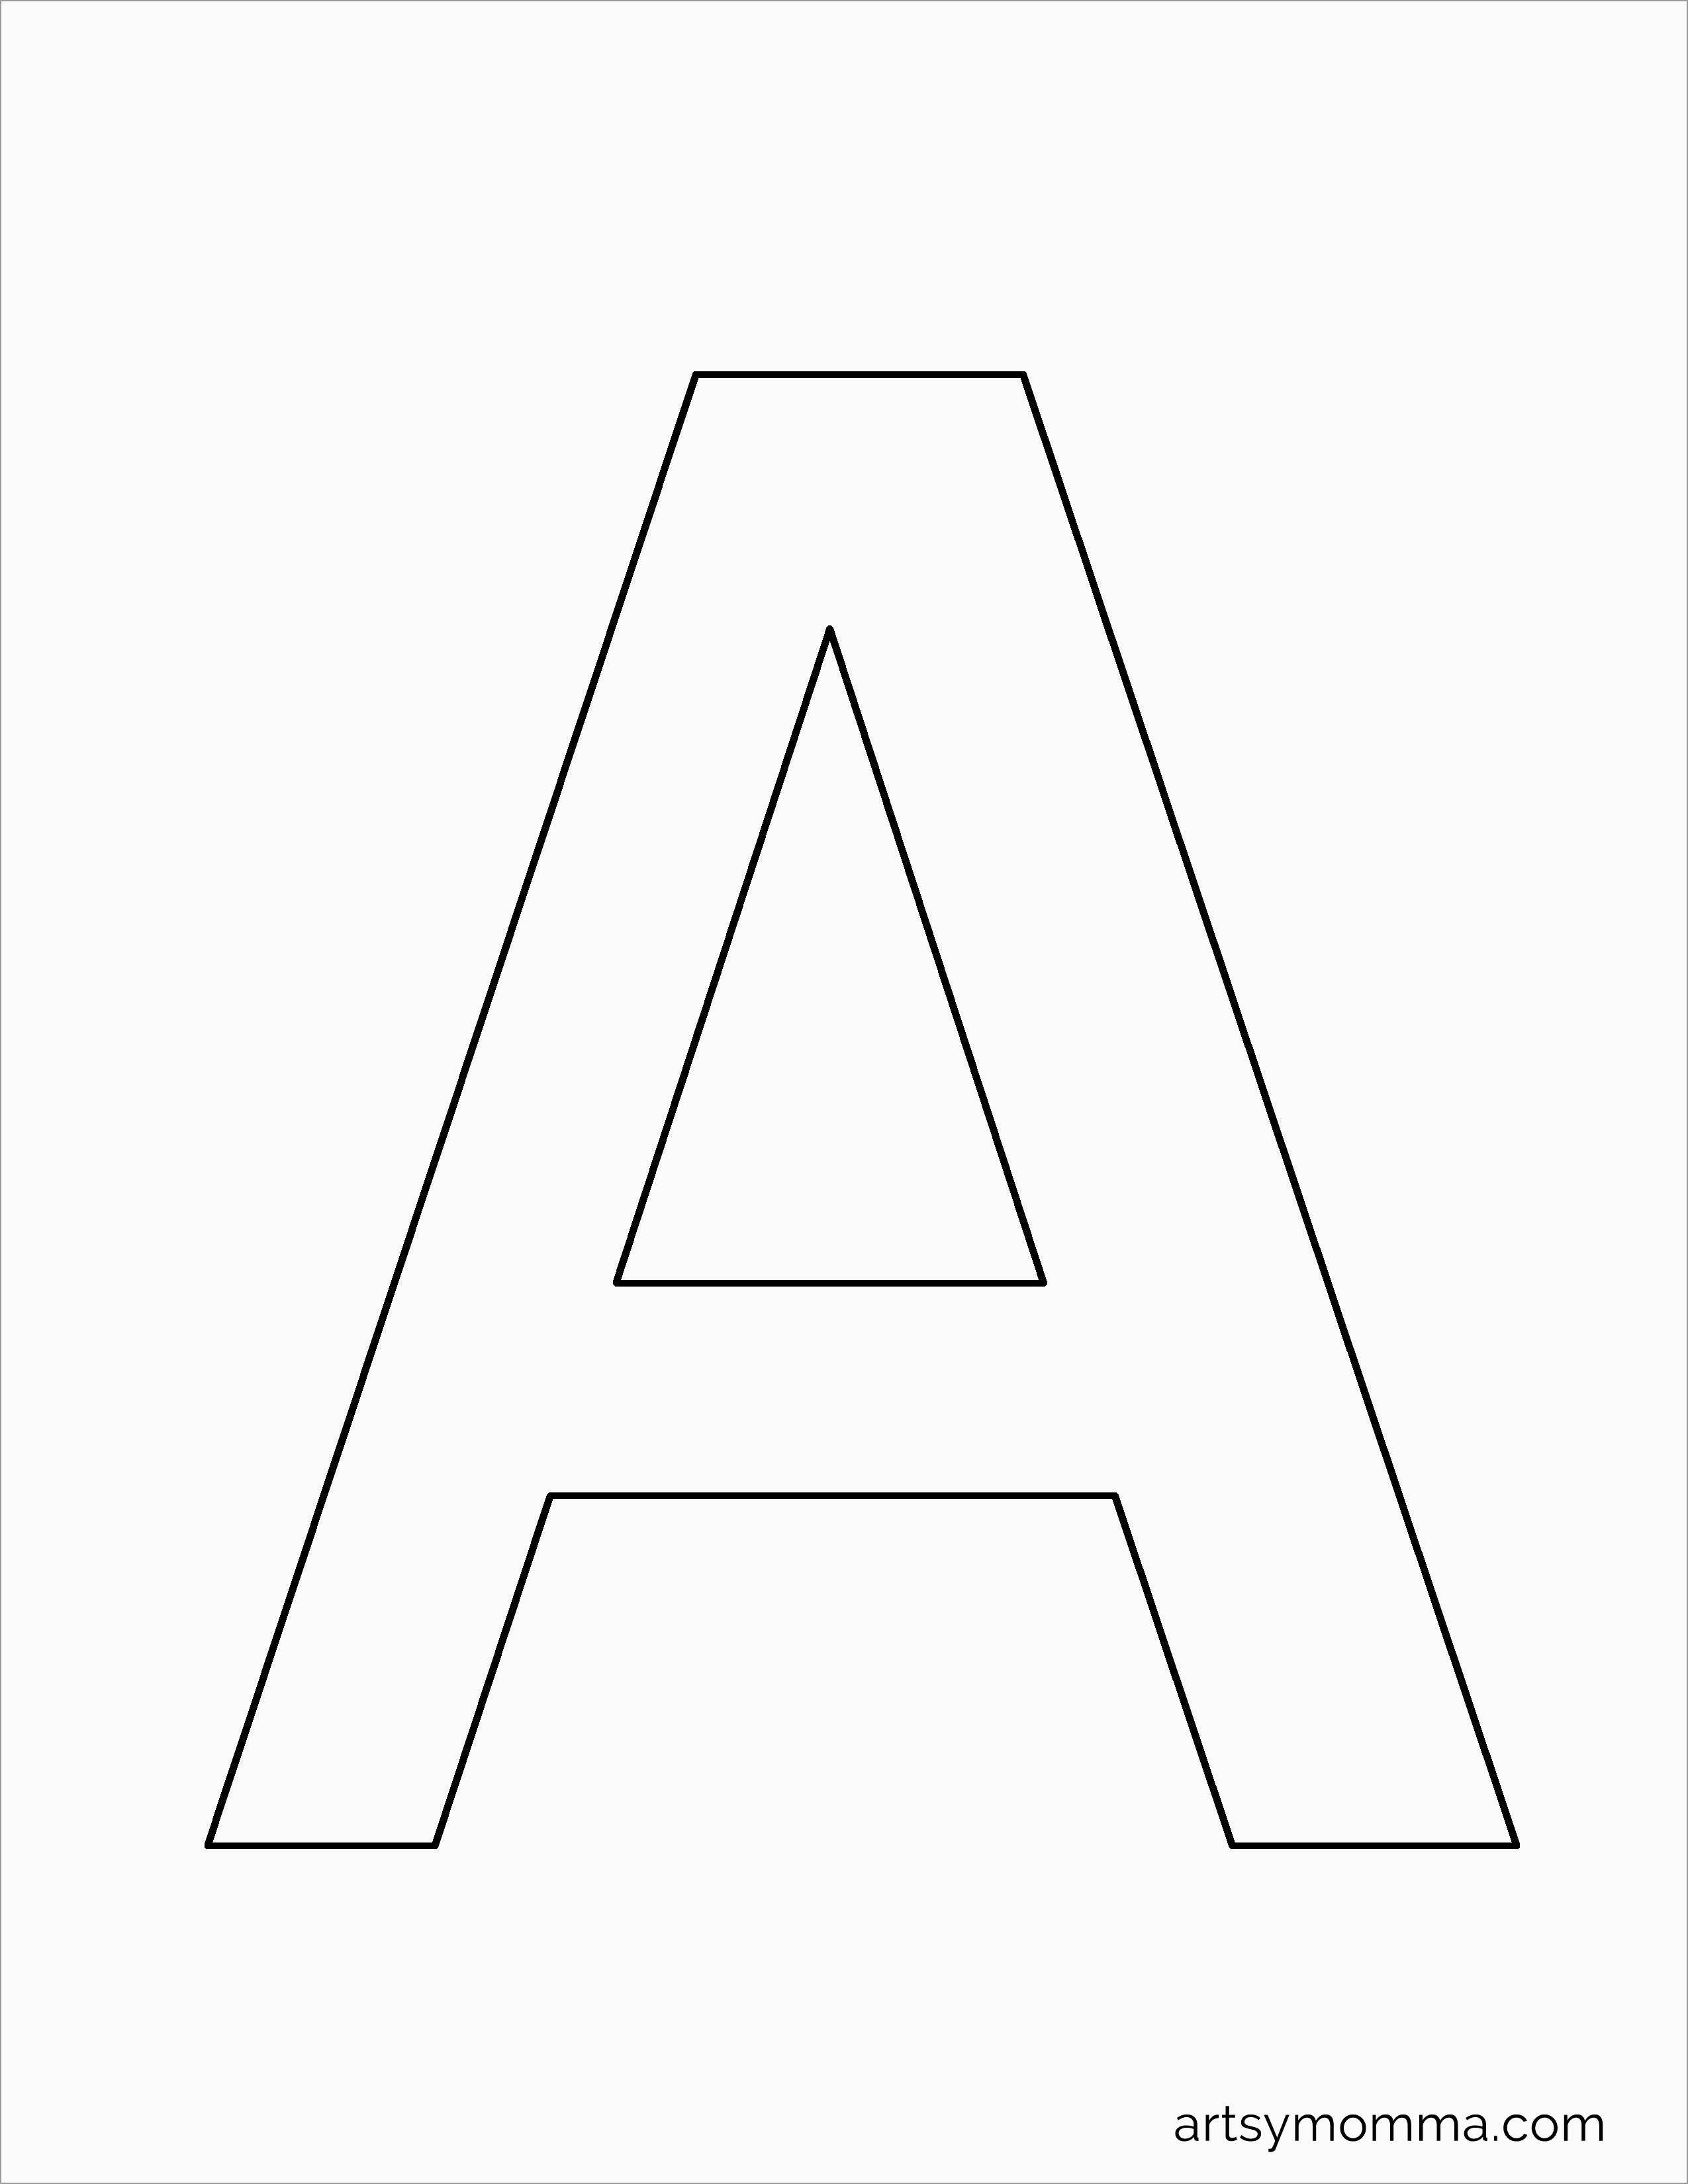 New Free Online Letter Templates | Best Of Template - Online Letter Stencils Free Printable